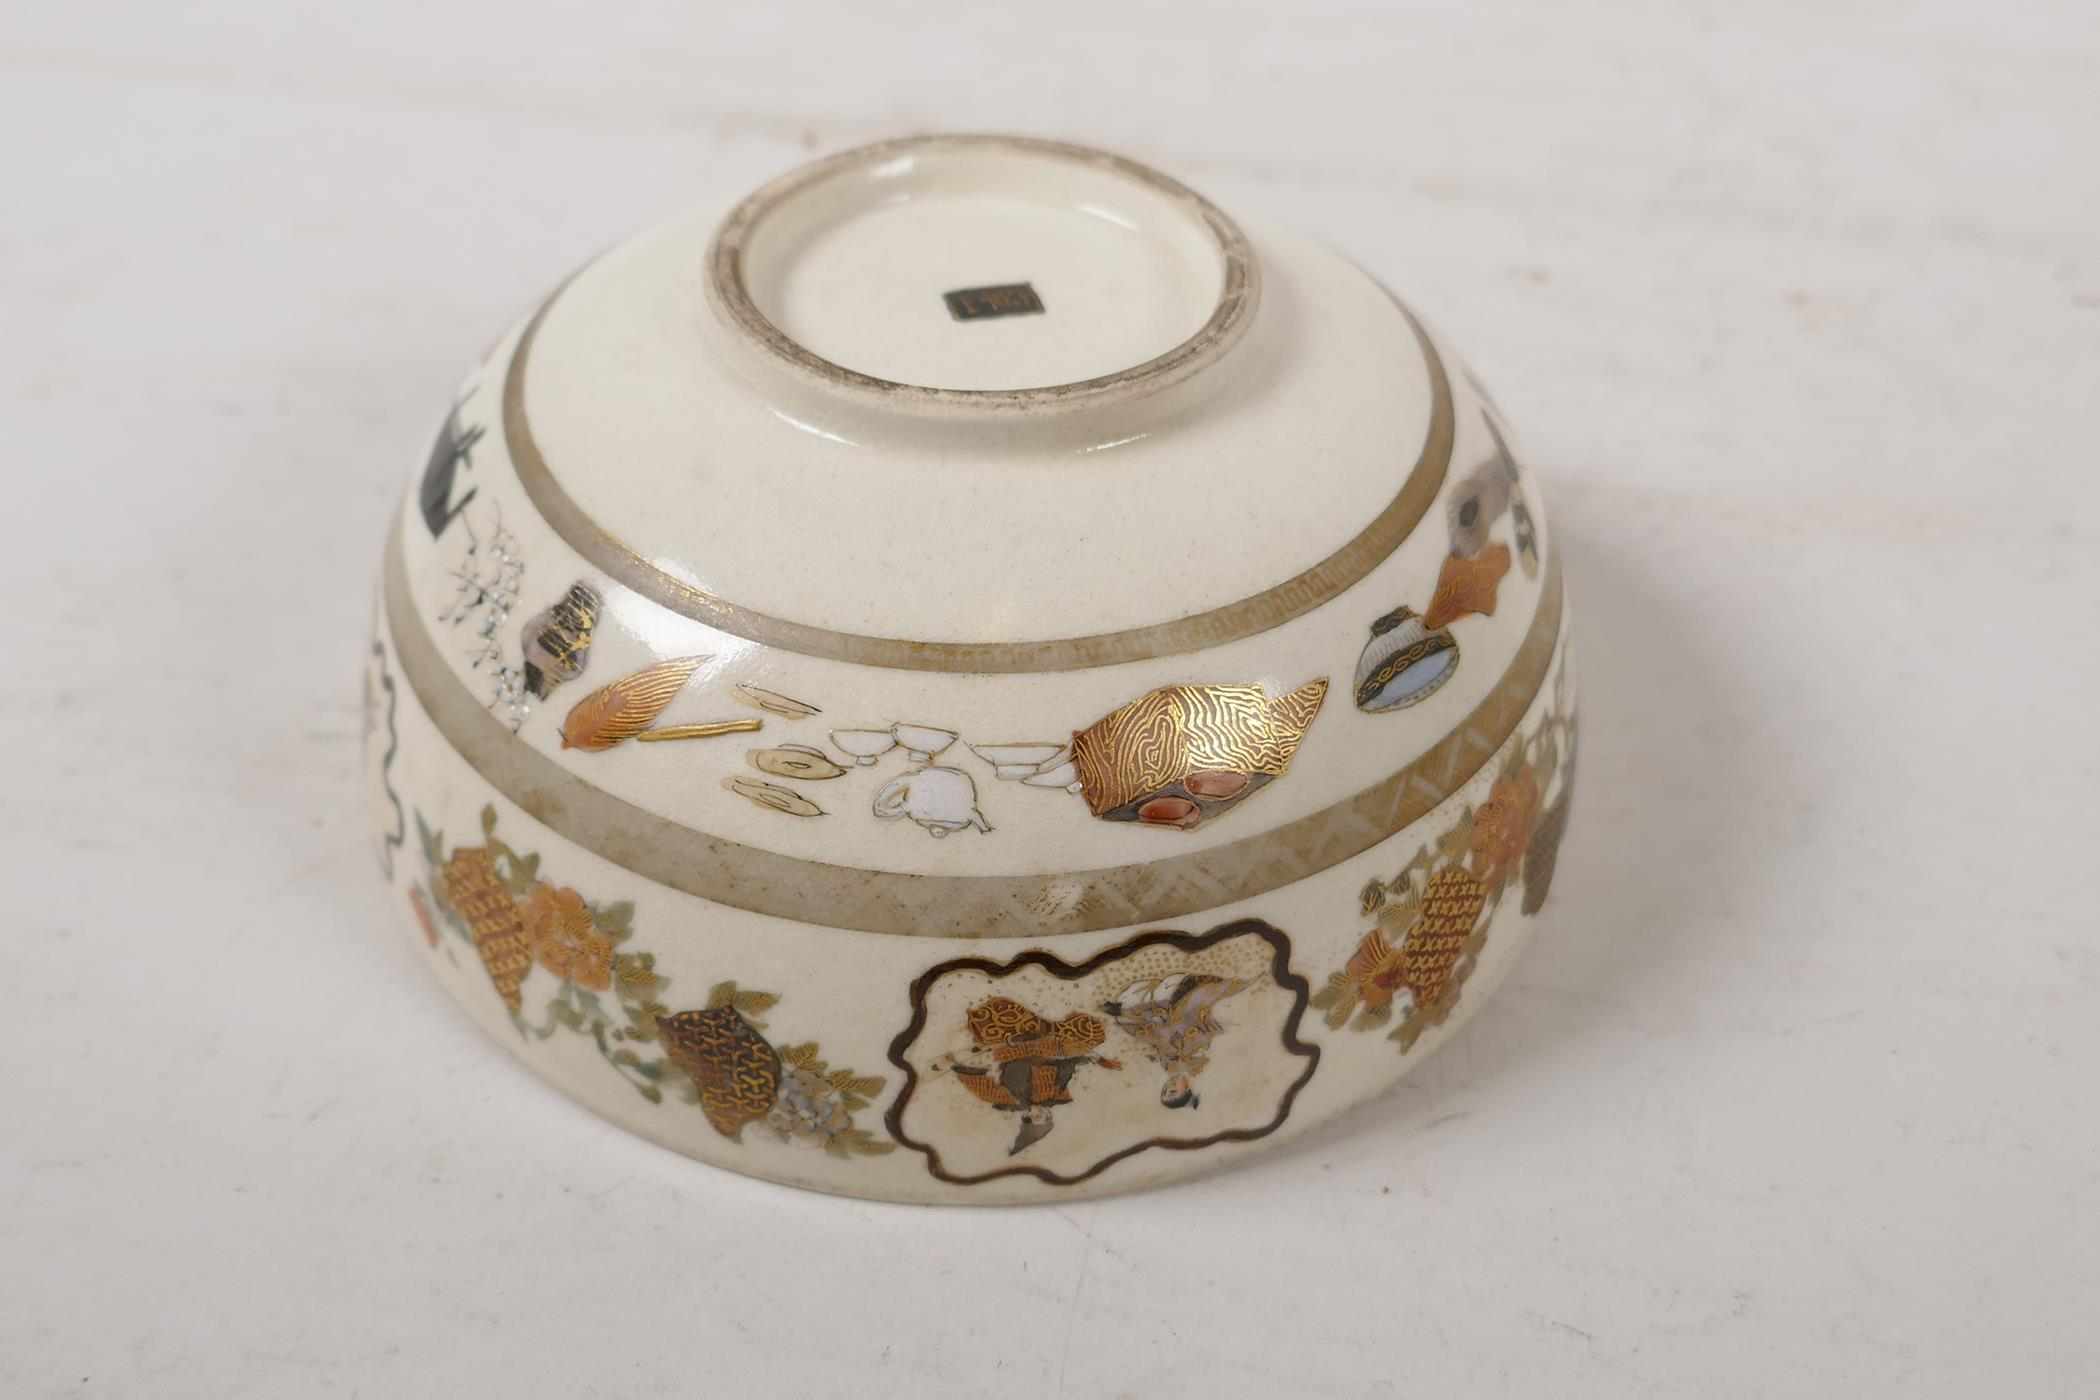 A Japanese meiji period satsuma bowl, decorated with children to the interior, the exterior with - Image 4 of 8